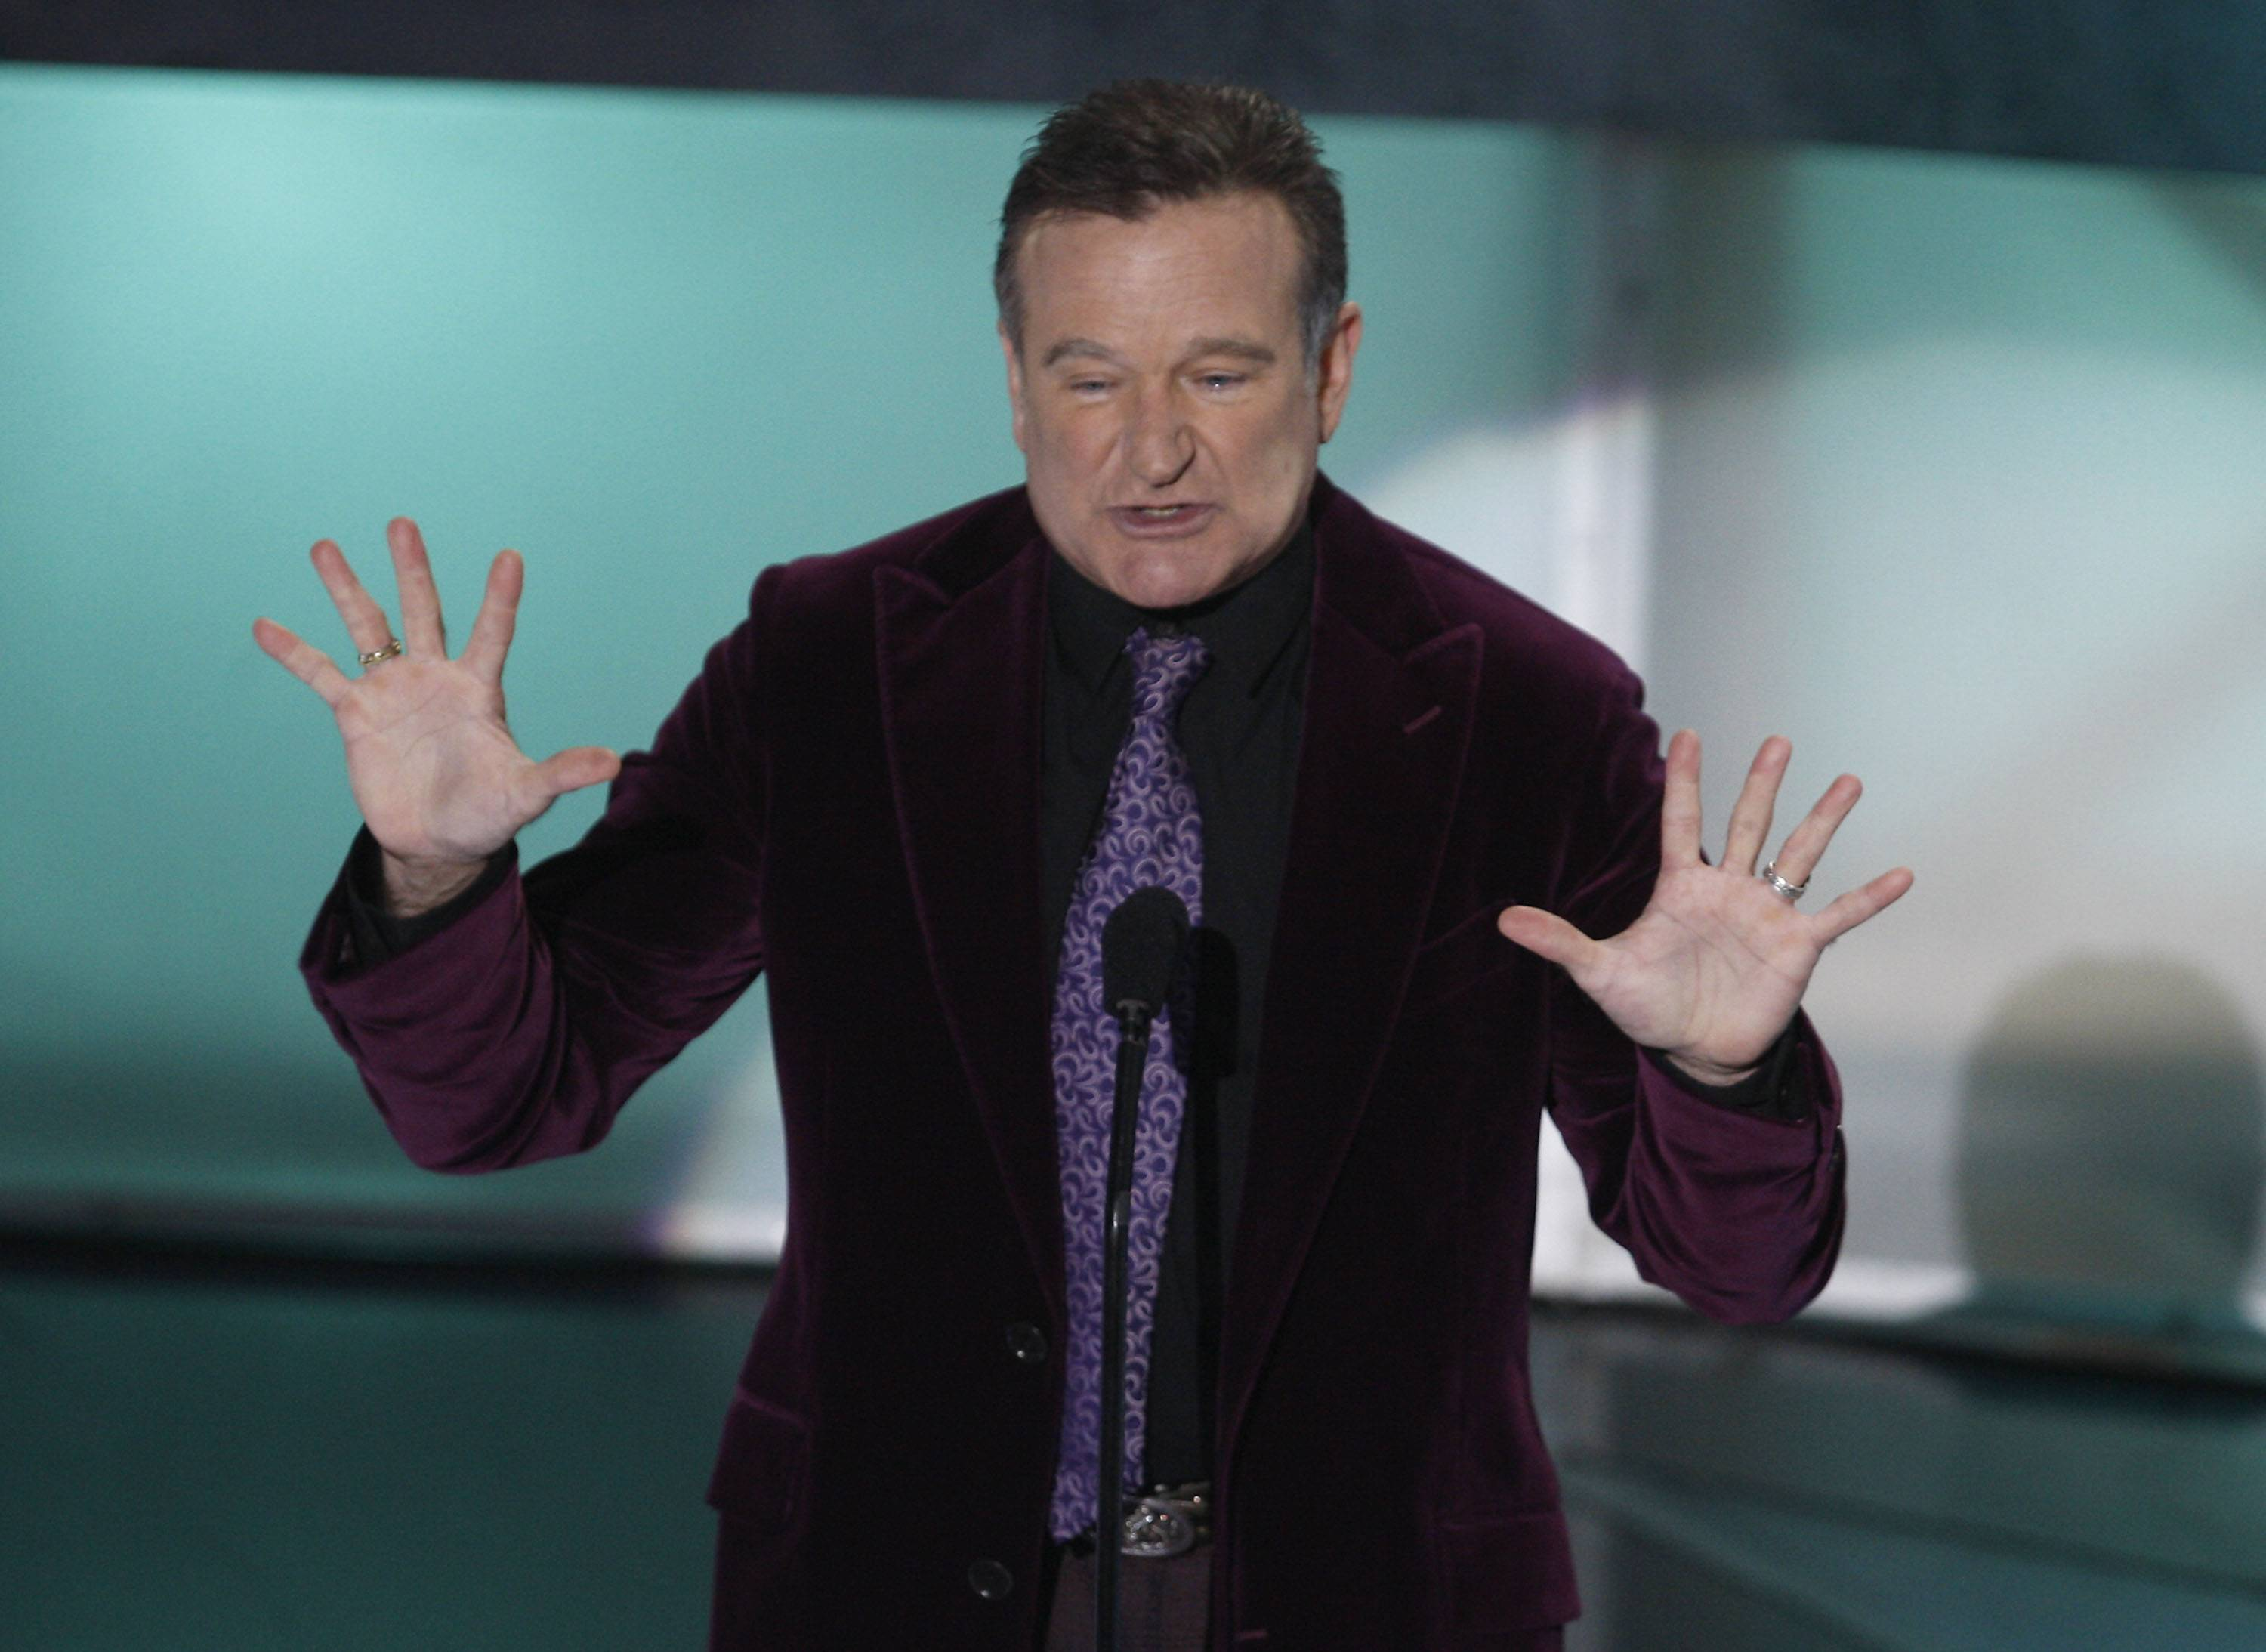 Actor Robin Williams is seen on stage at the 35th Annual People's Choice Awards on Jan. 7, 2009, in Los Angeles.